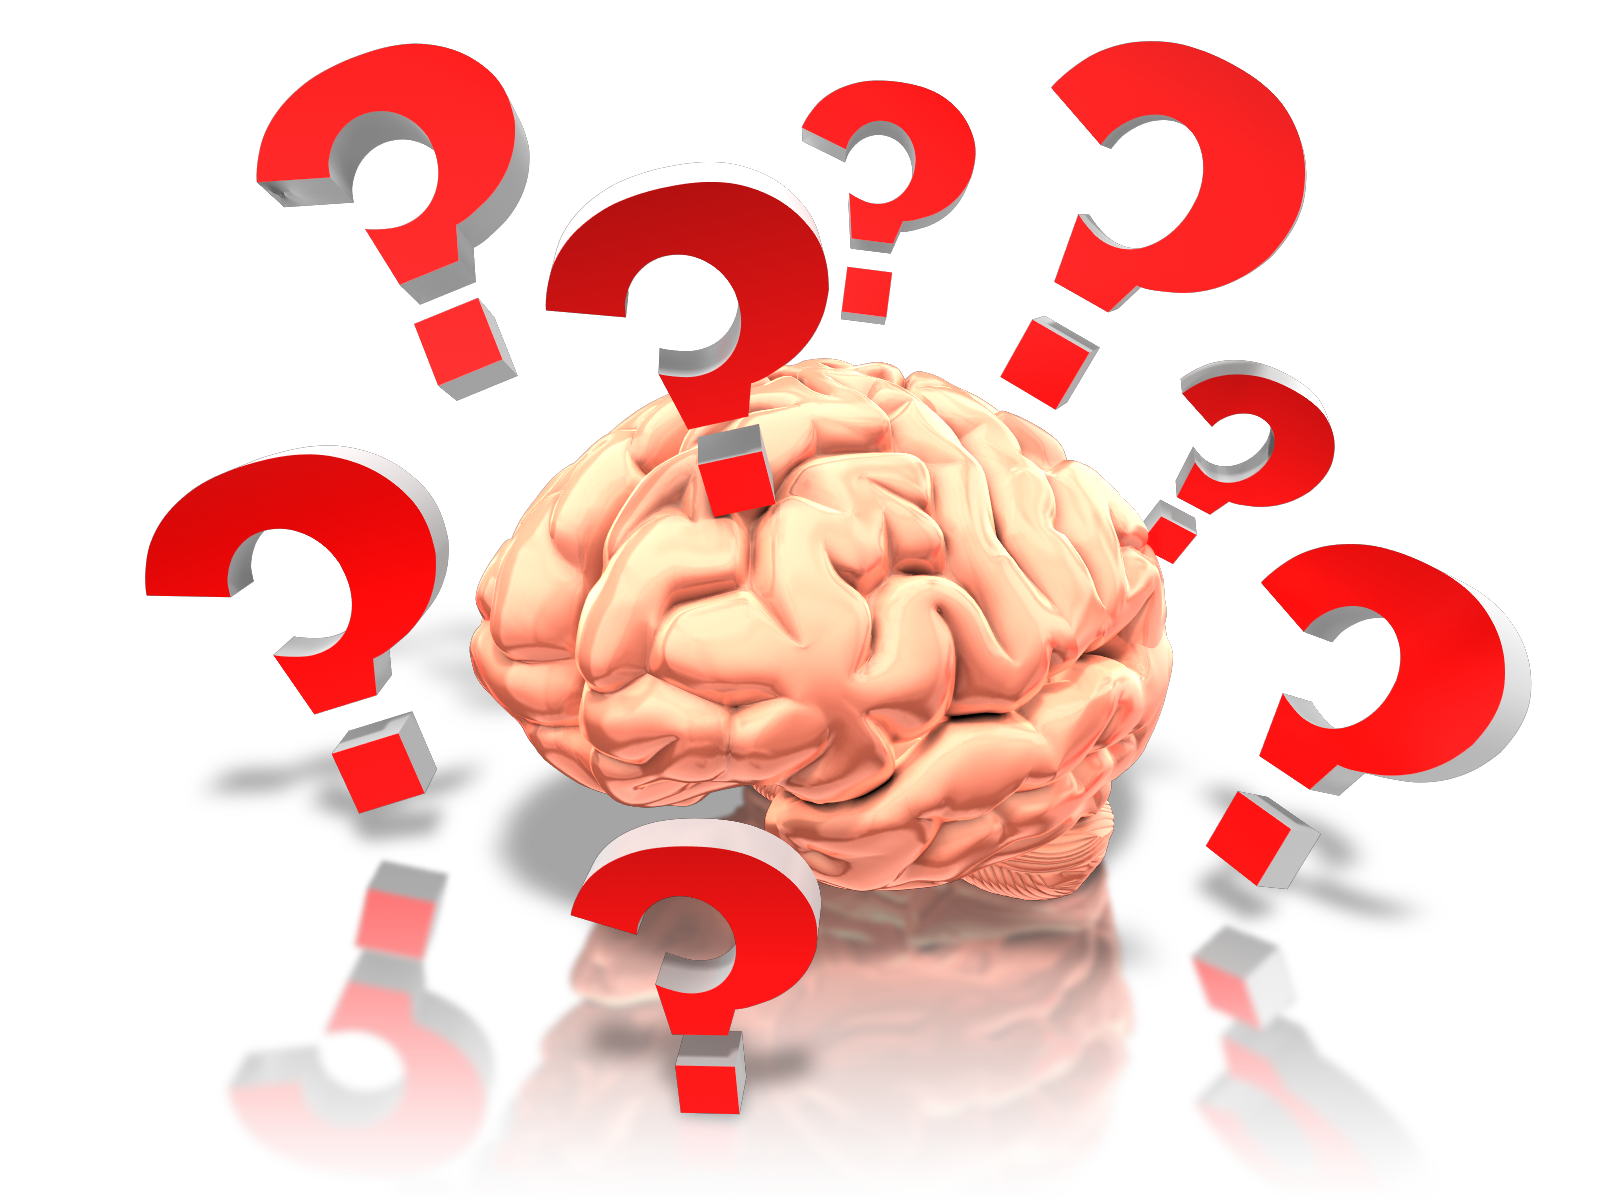 brain_with_questions_1600_clr_9219